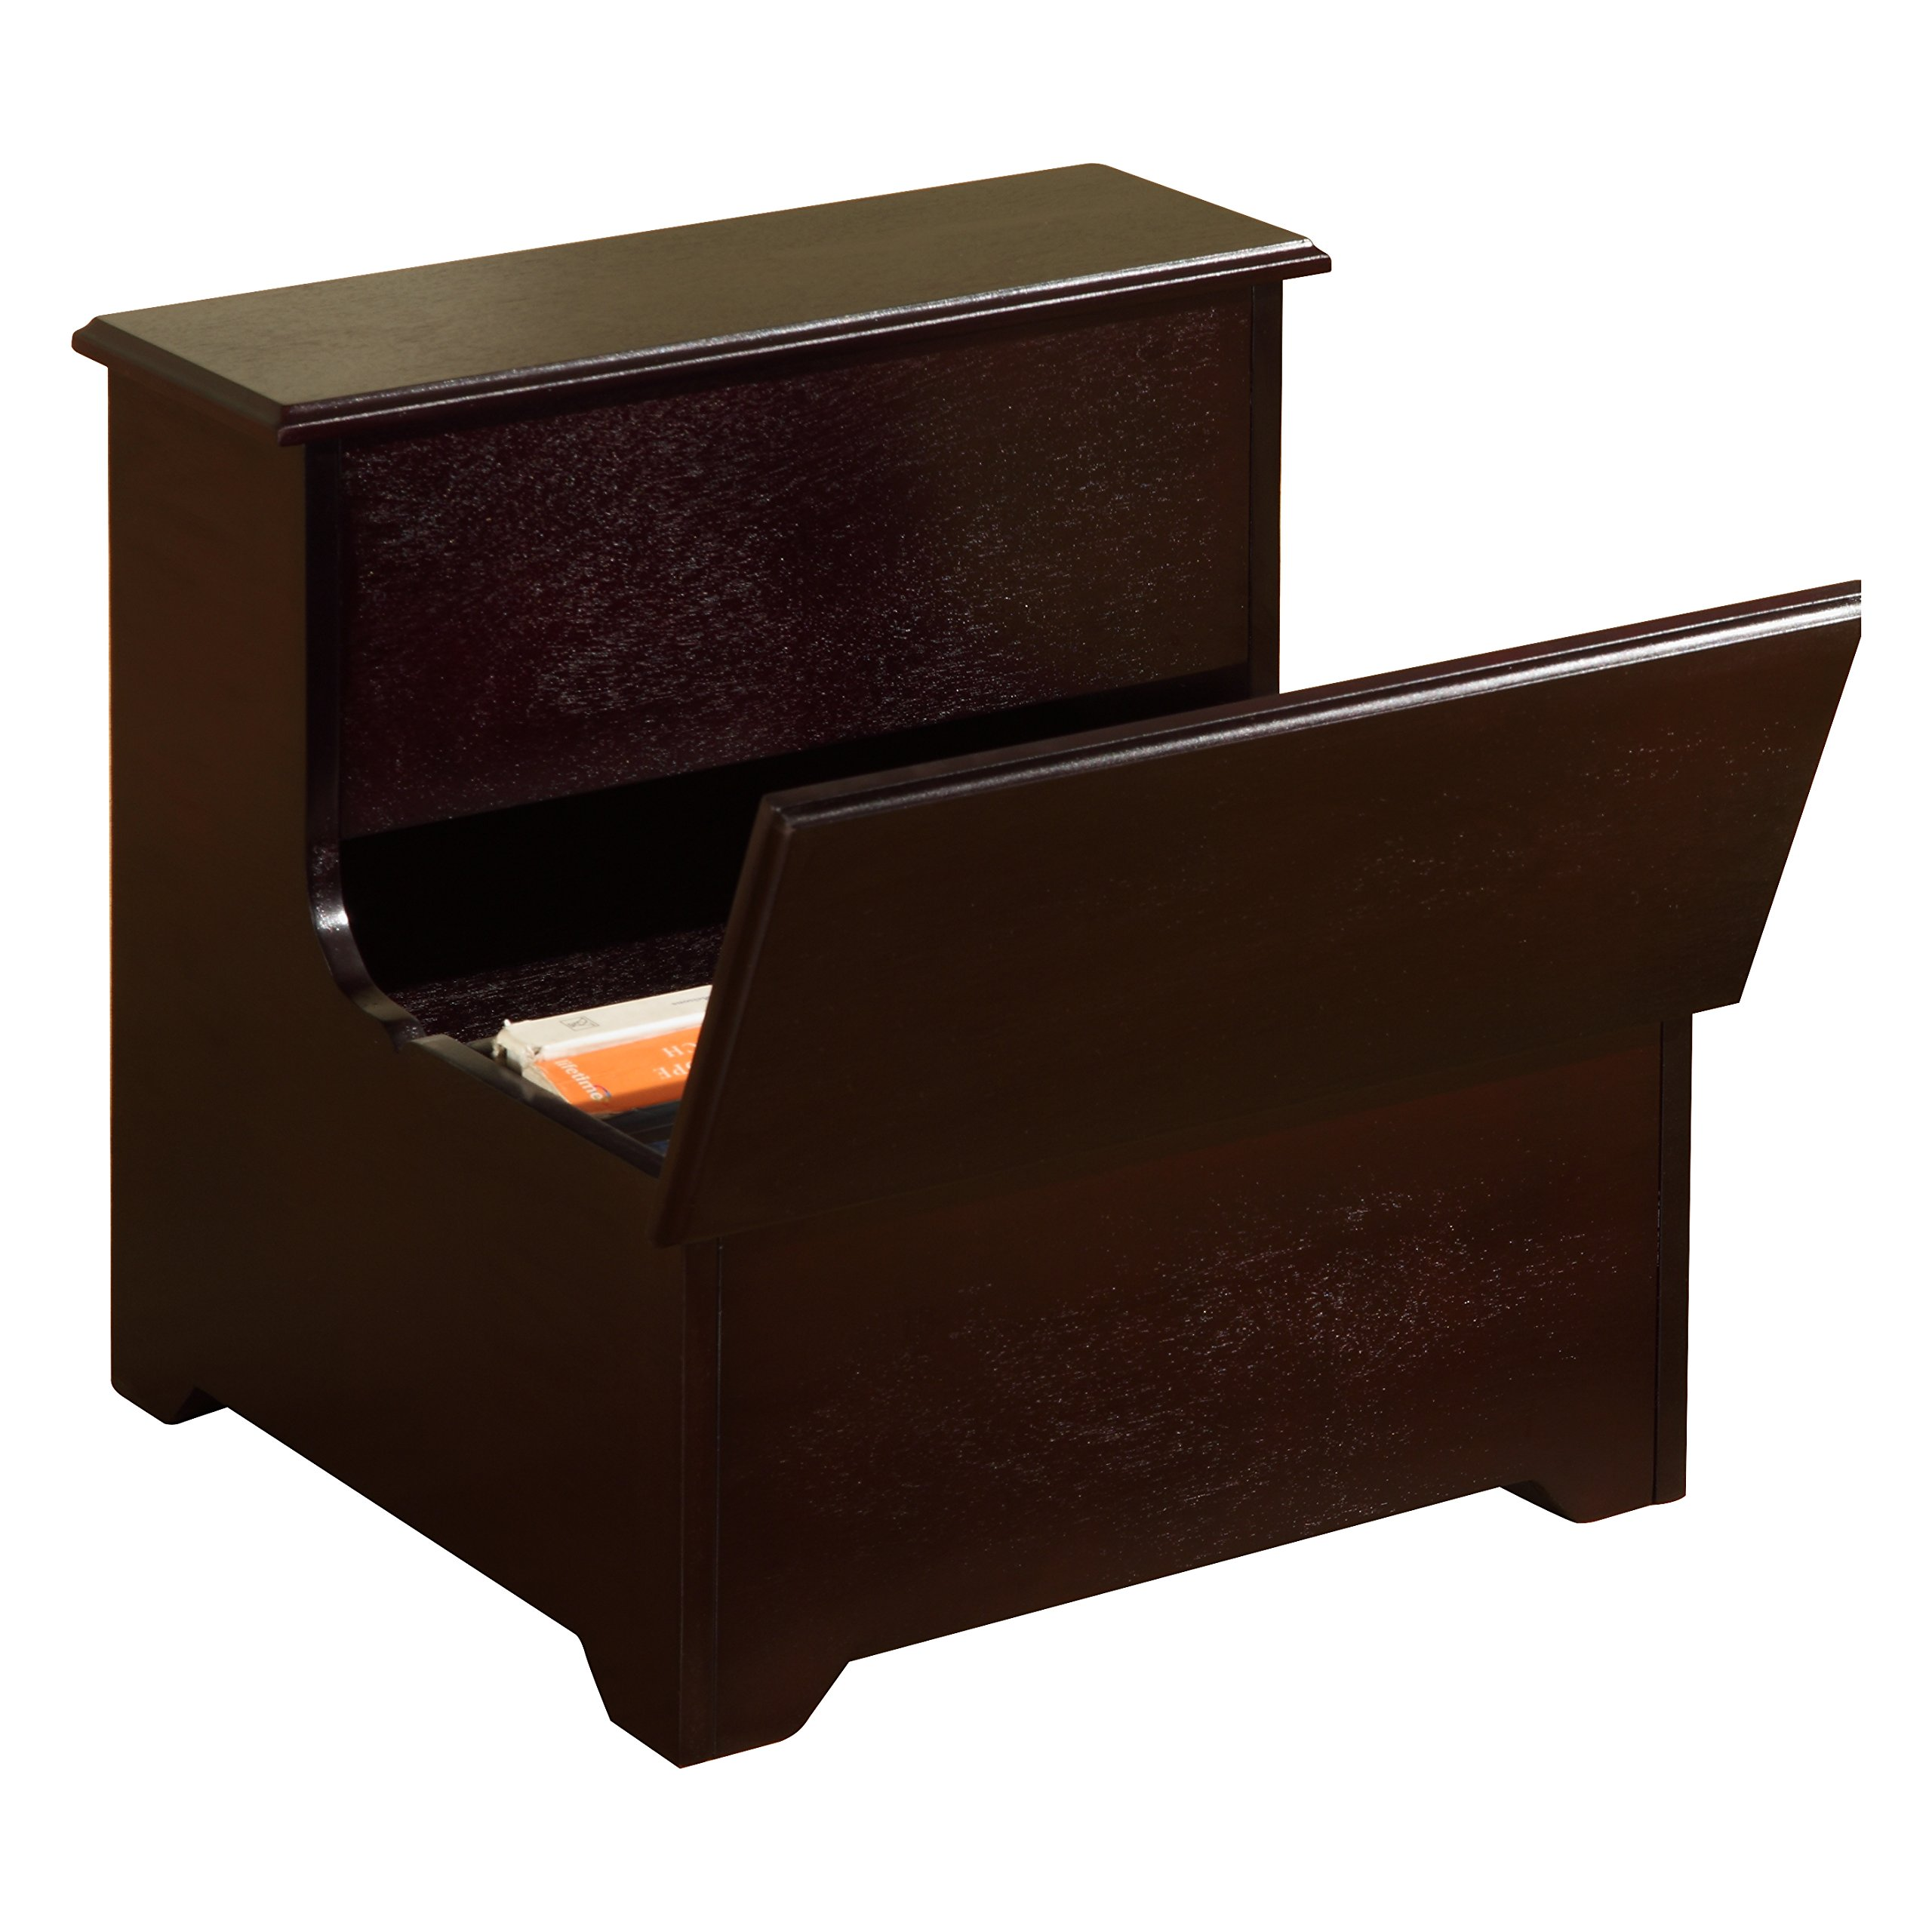 Pilaster Designs - Cherry Finish Wood Bedroom Bed Storage Step Stool by Pilaster Designs